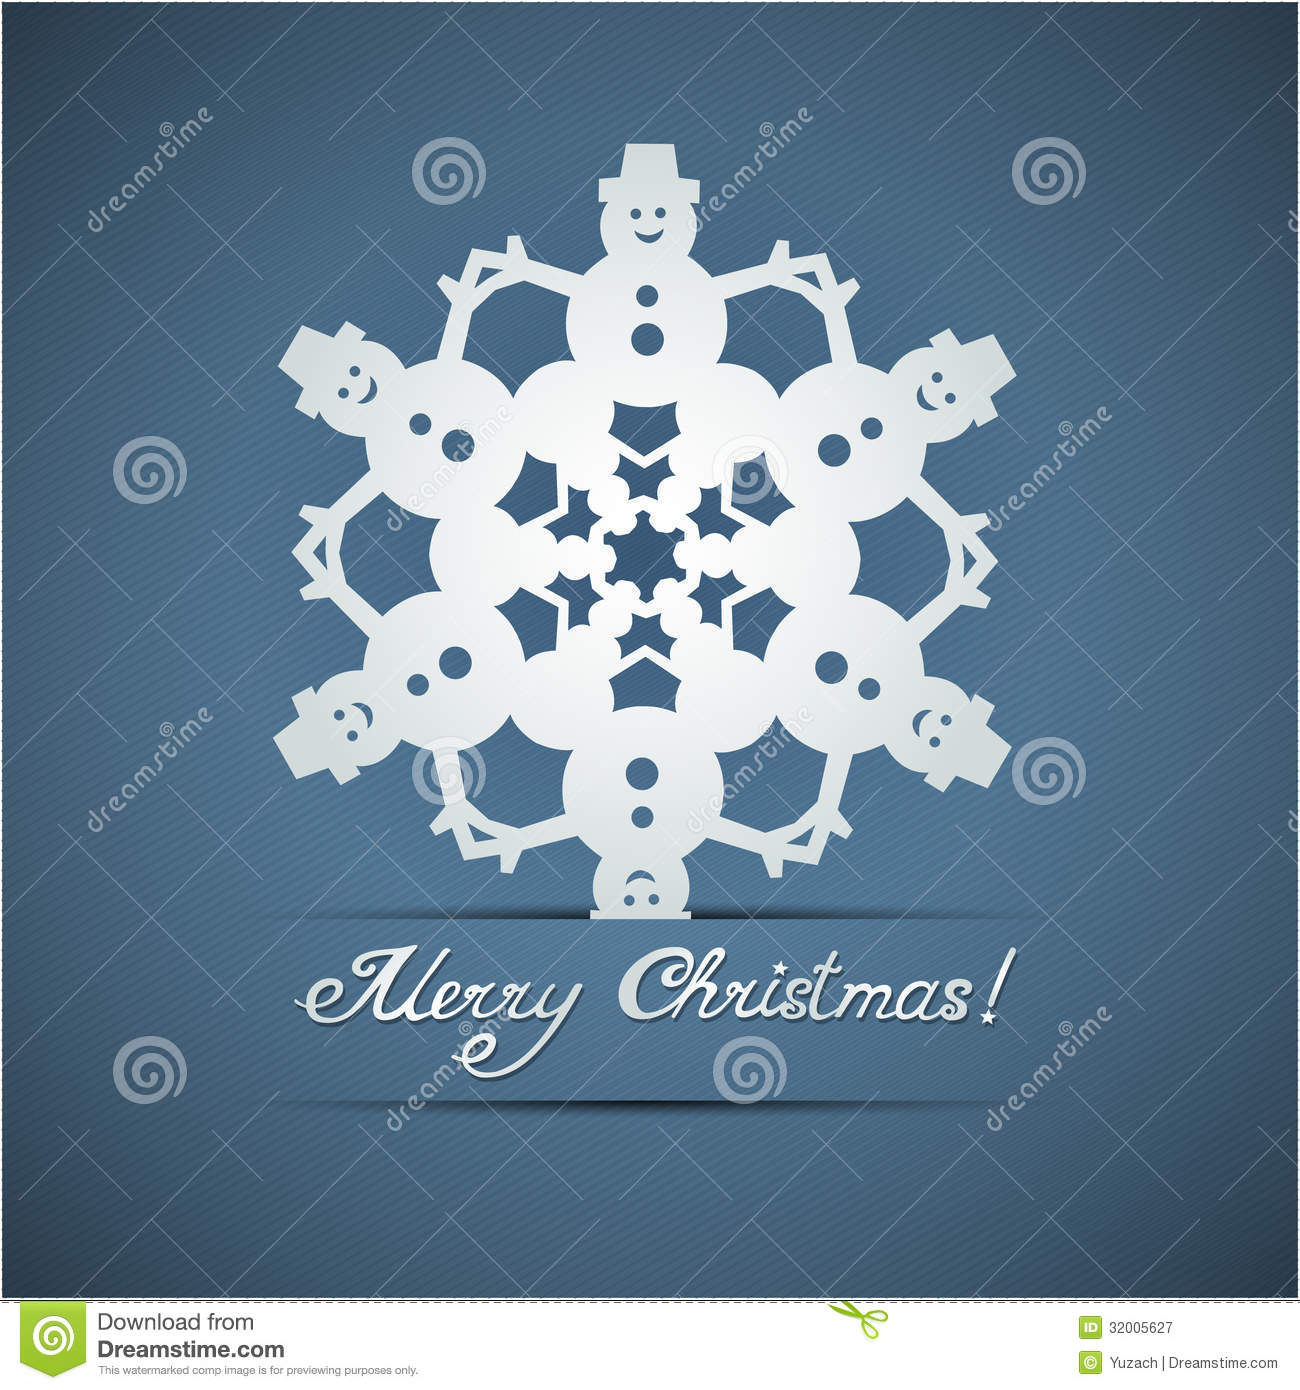 Paper Origami Christmas Snowflake Card Royalty Free Stock